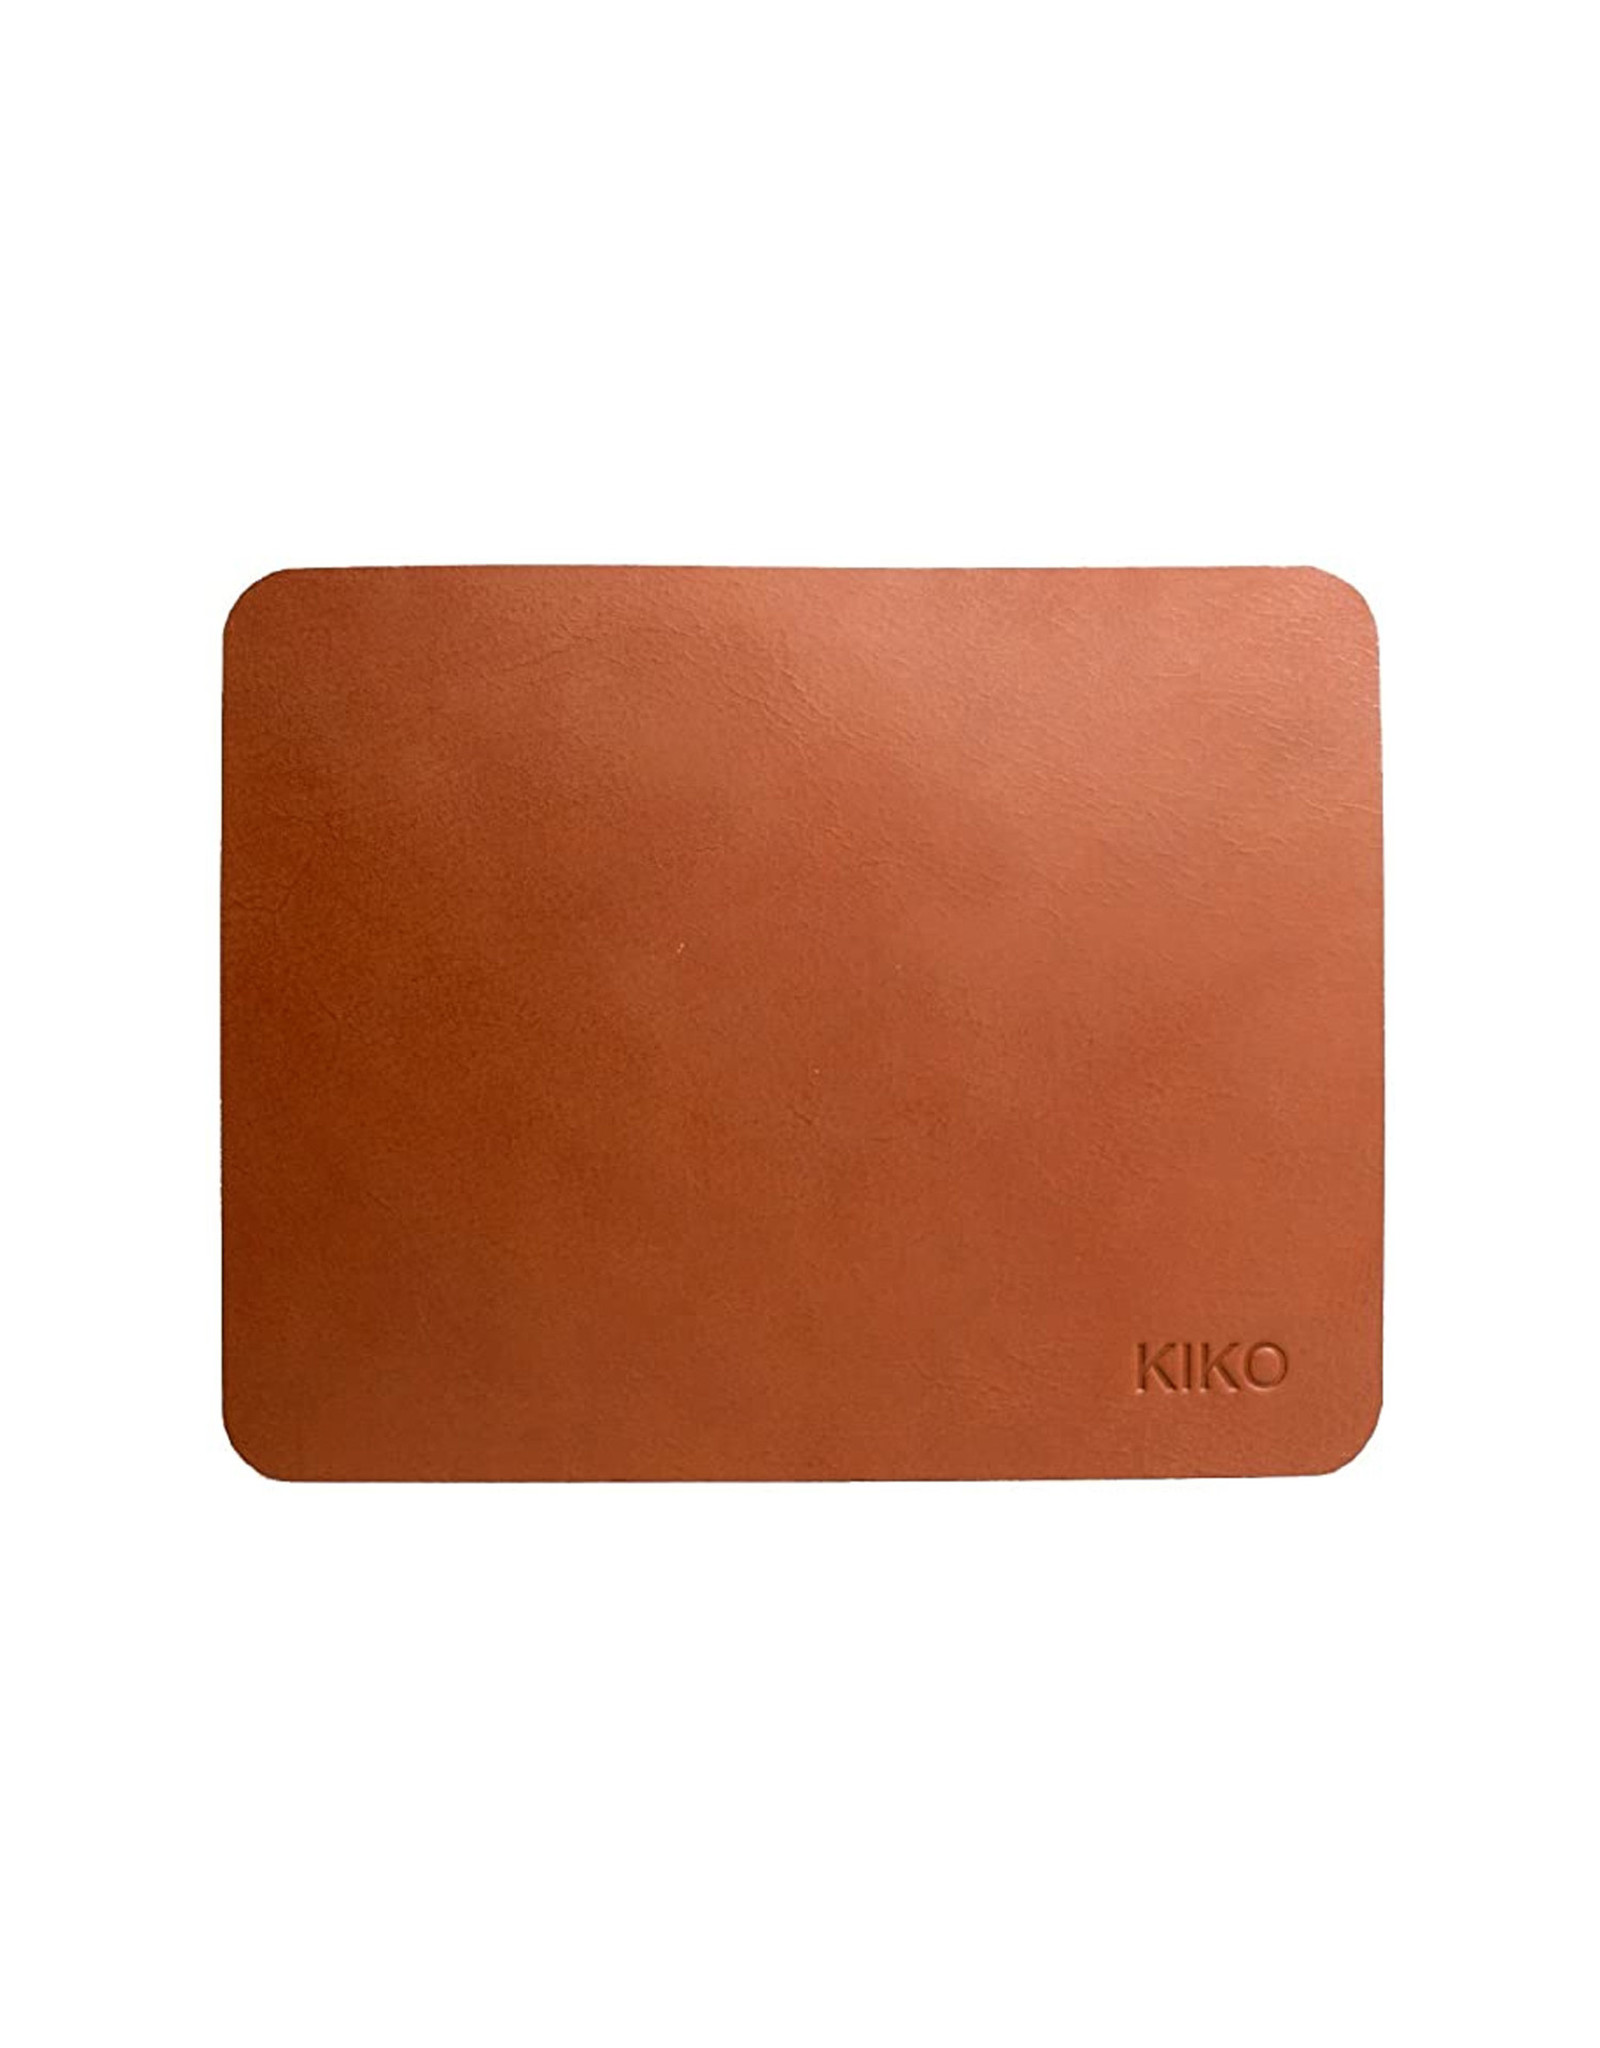 Kiko Leather Mouse Pad Brown